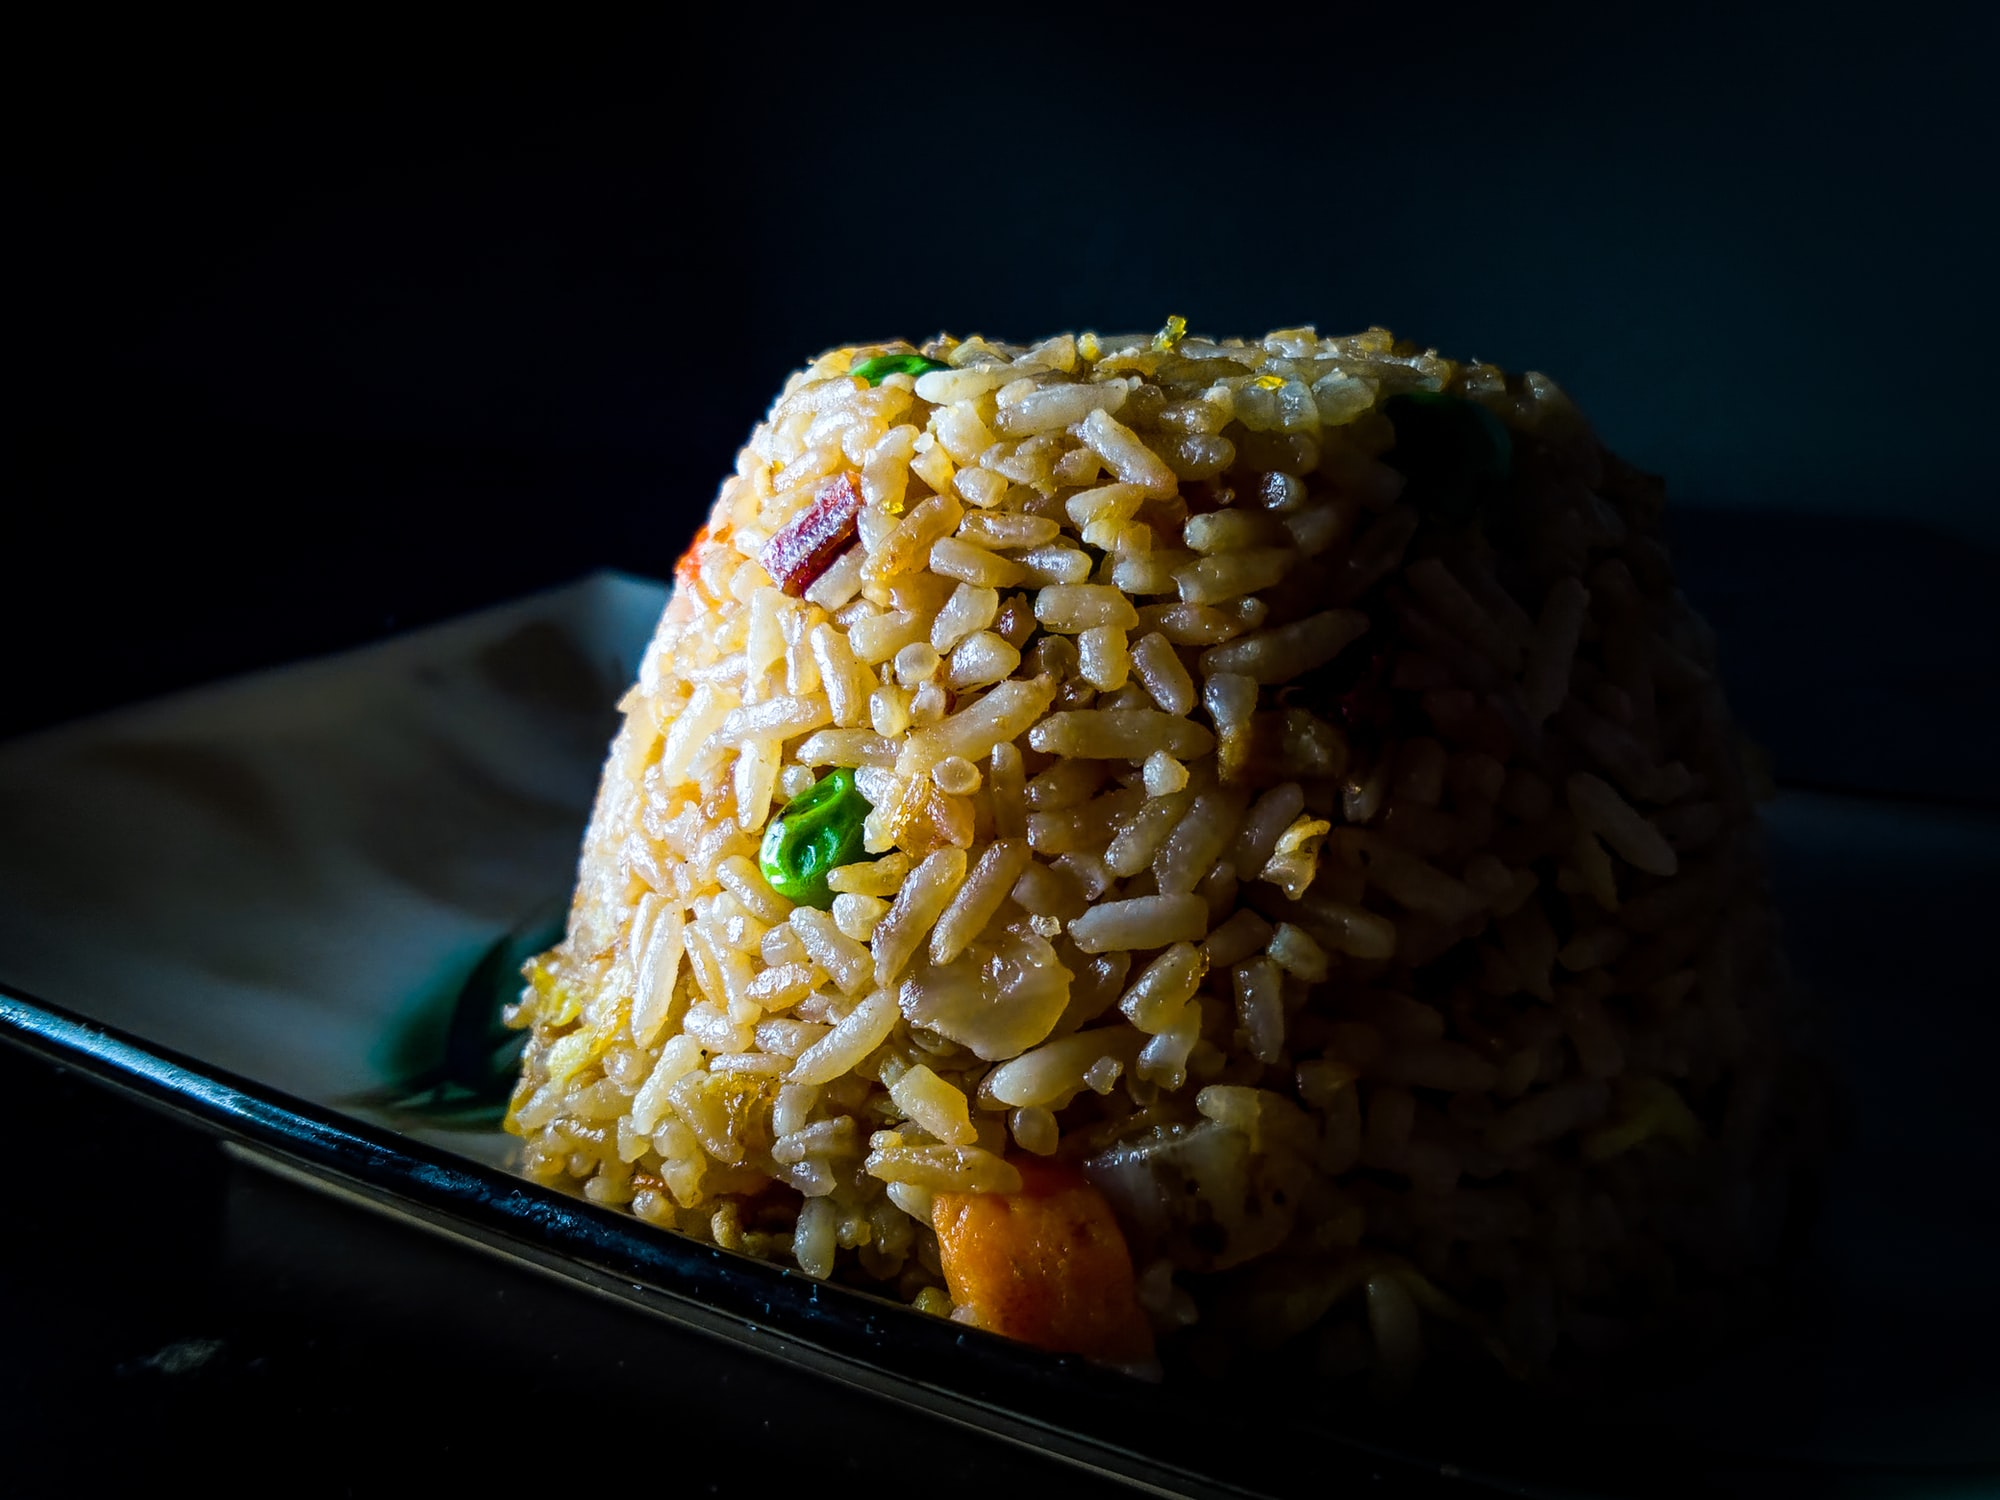 House Fried Rice on a small plate with Rembrandt lighting